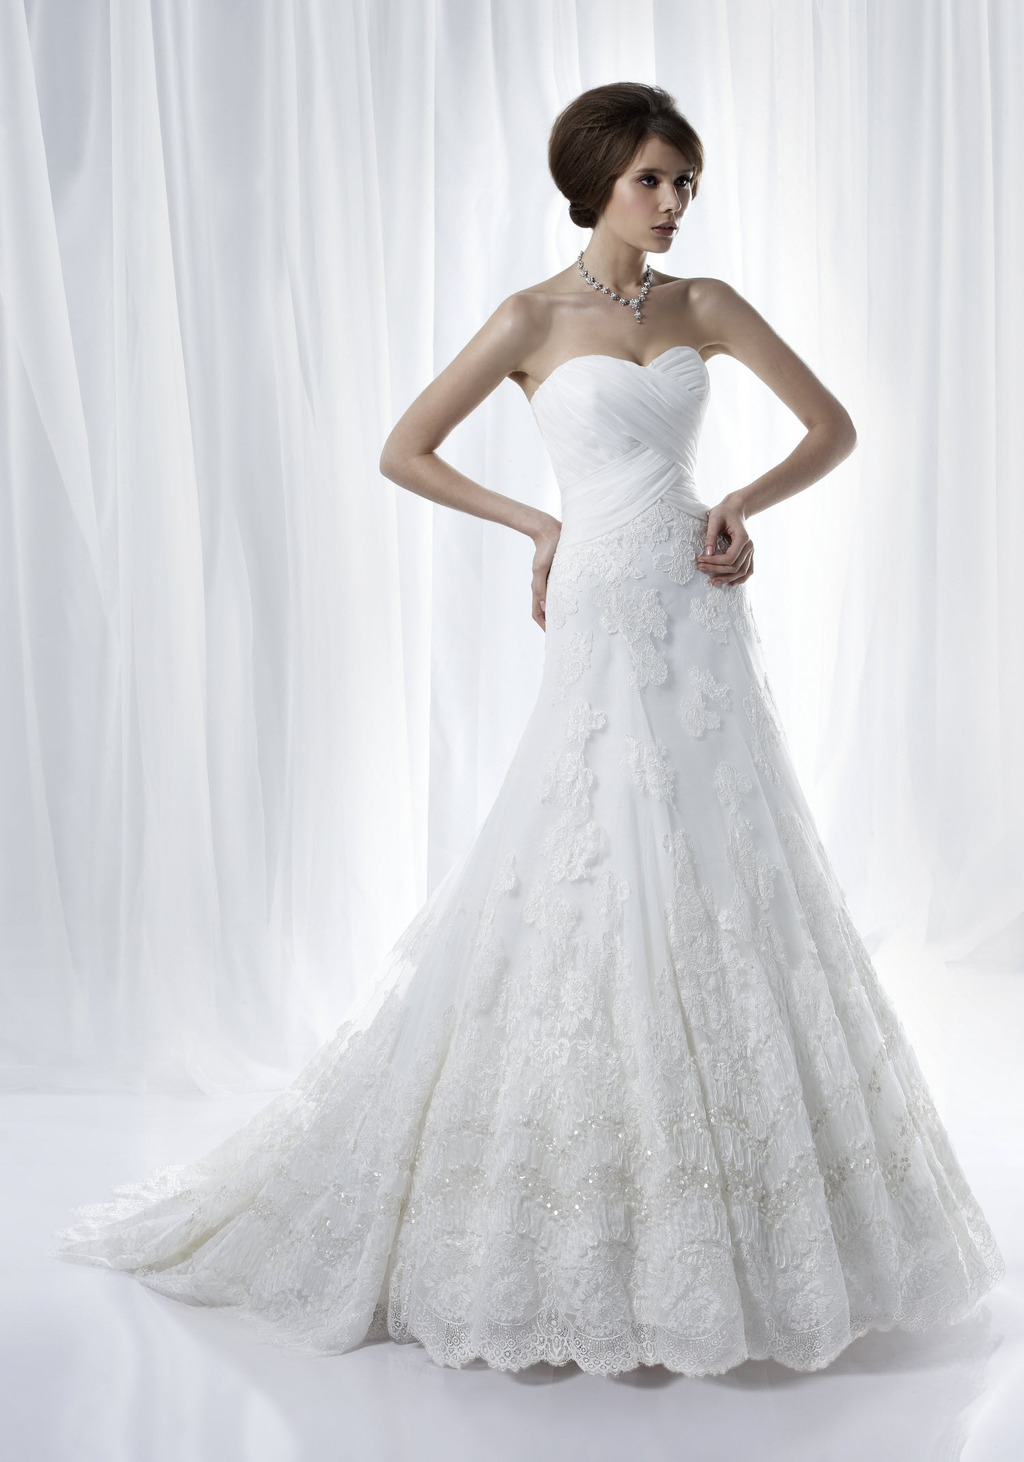 2012-anjolique-wedding-dress-classic-a-line-strapless-lace-bridal-gown.full